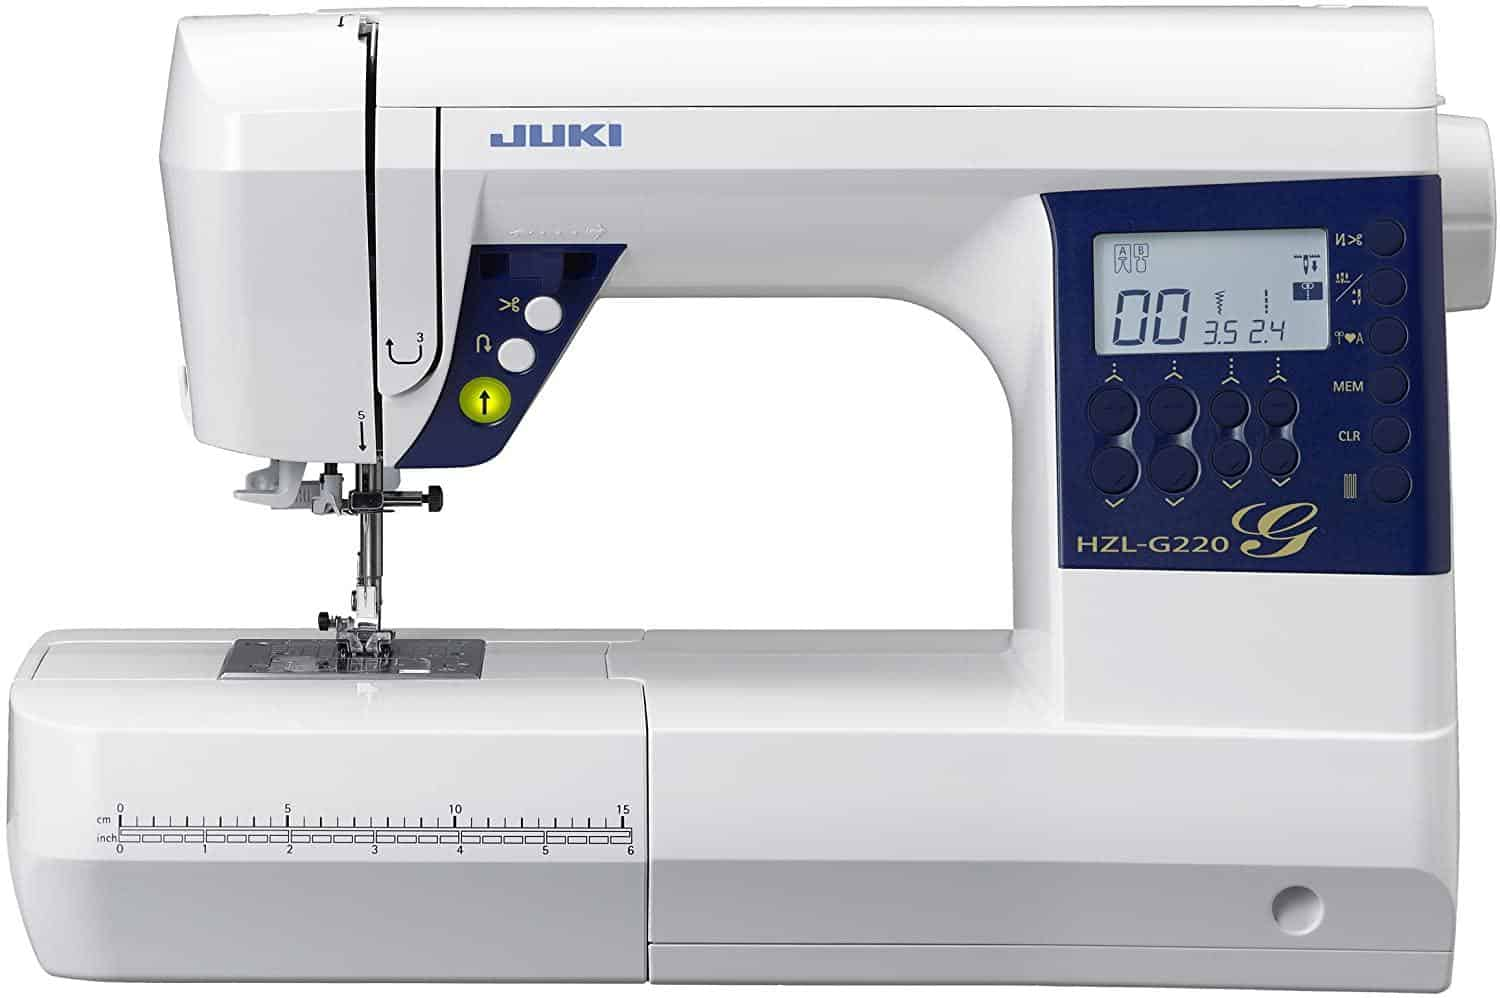 Juki HZL-G220 Sewing Machine is the Best sewing machine for home use, Which sewing machine is best for home use?, What's the easiest sewing machine to use?, How do I choose a beginner sewing machine?, Which sewing machine is easiest to sew clothings?, How much does a good sewing machine cost?, What are the four types of sewing machines?, What's better Singer or brother?, 10 Best Sewing Machines According to tailors and Textile Experts, The Best Sewing Machine Reviews,